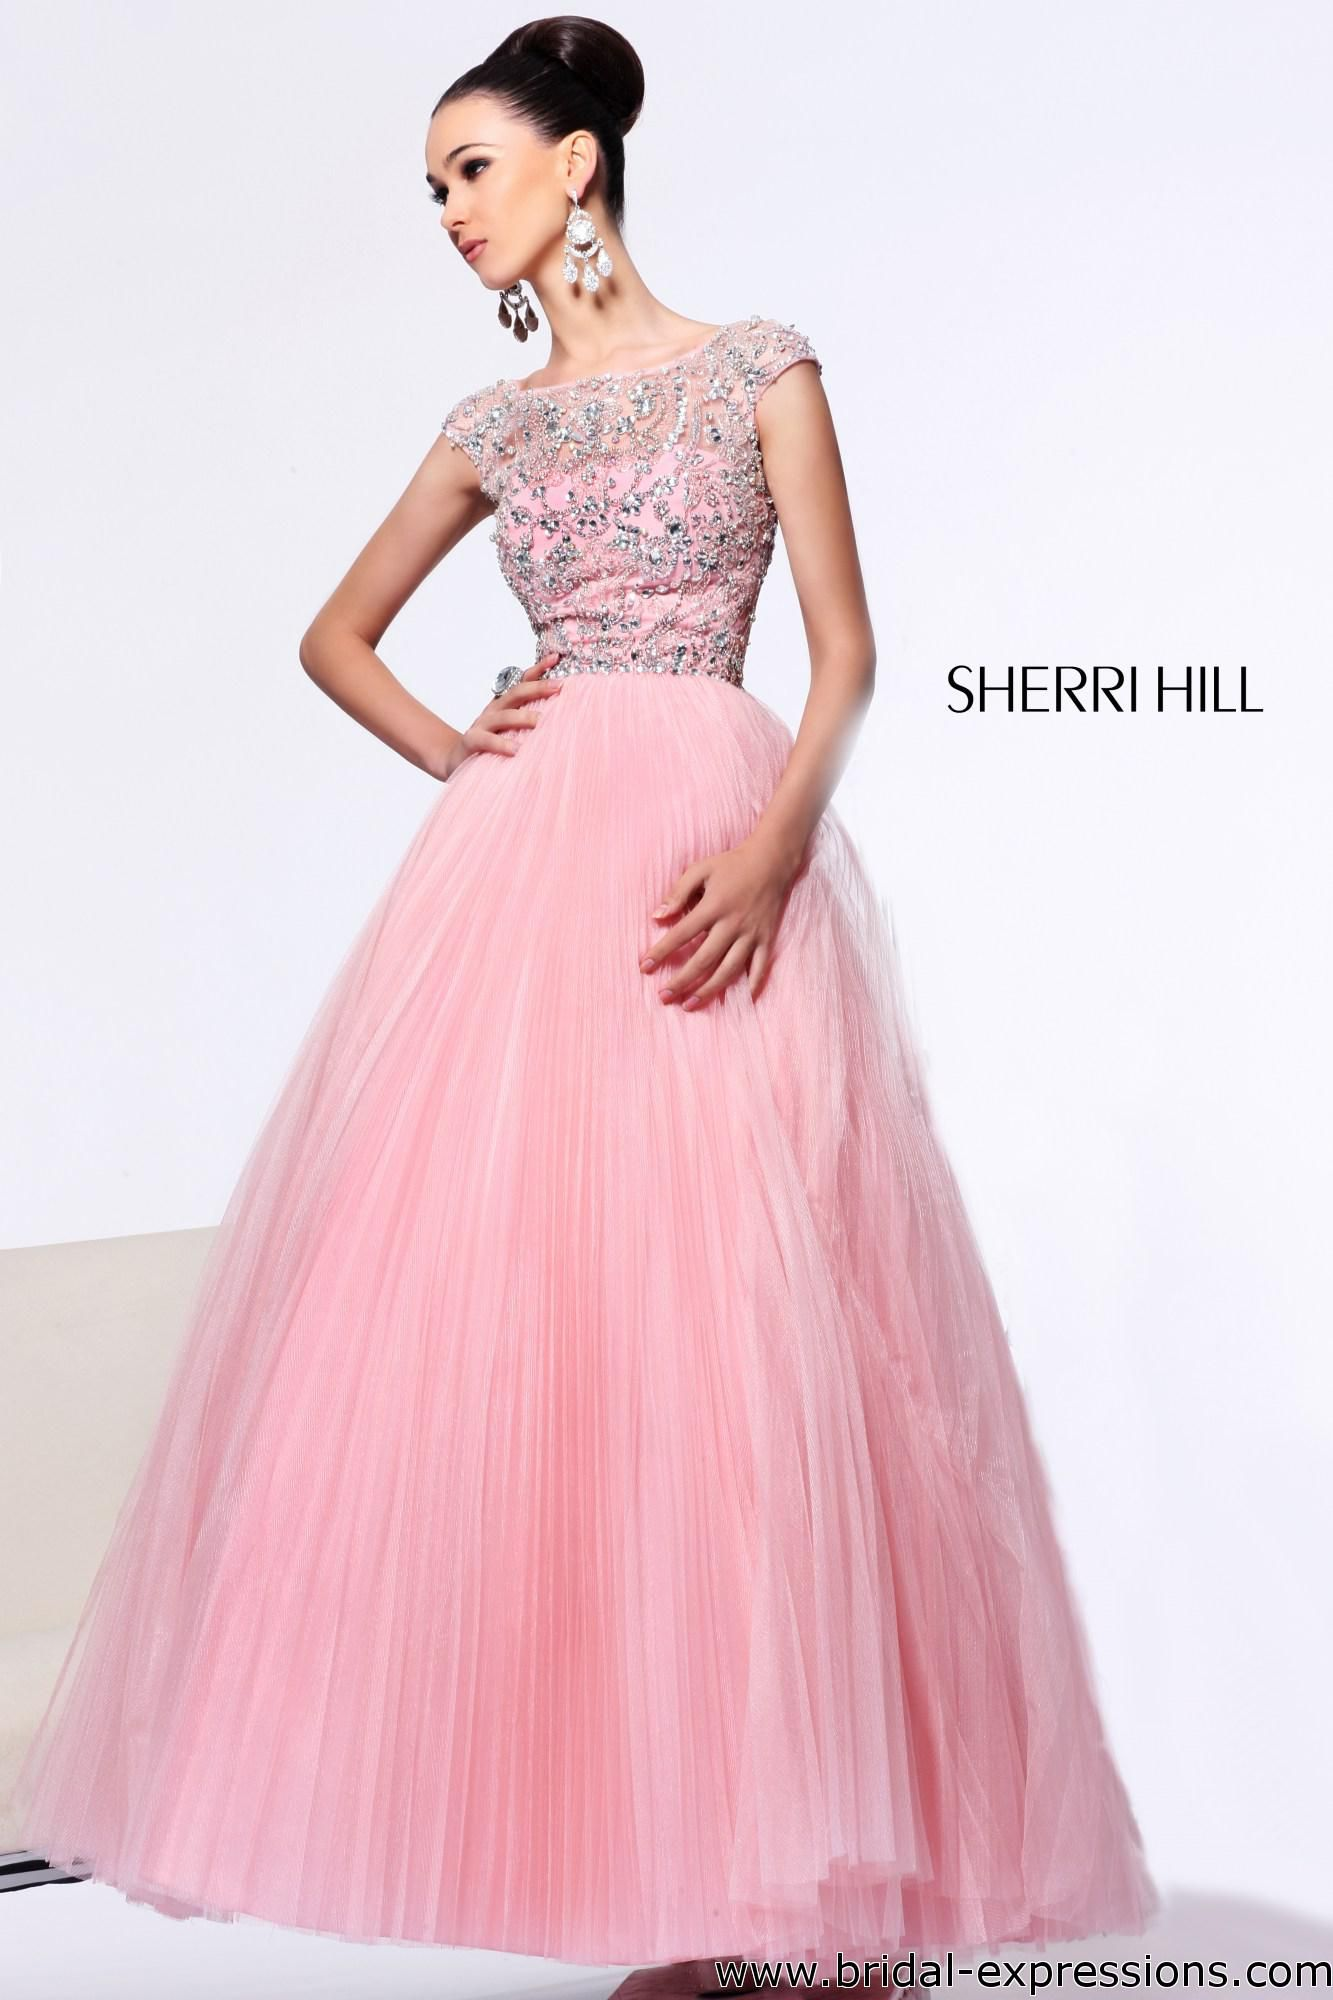 Sherri Hill 2984 Sheer Cap Sleeve Prom Dress | Random | Pinterest ...